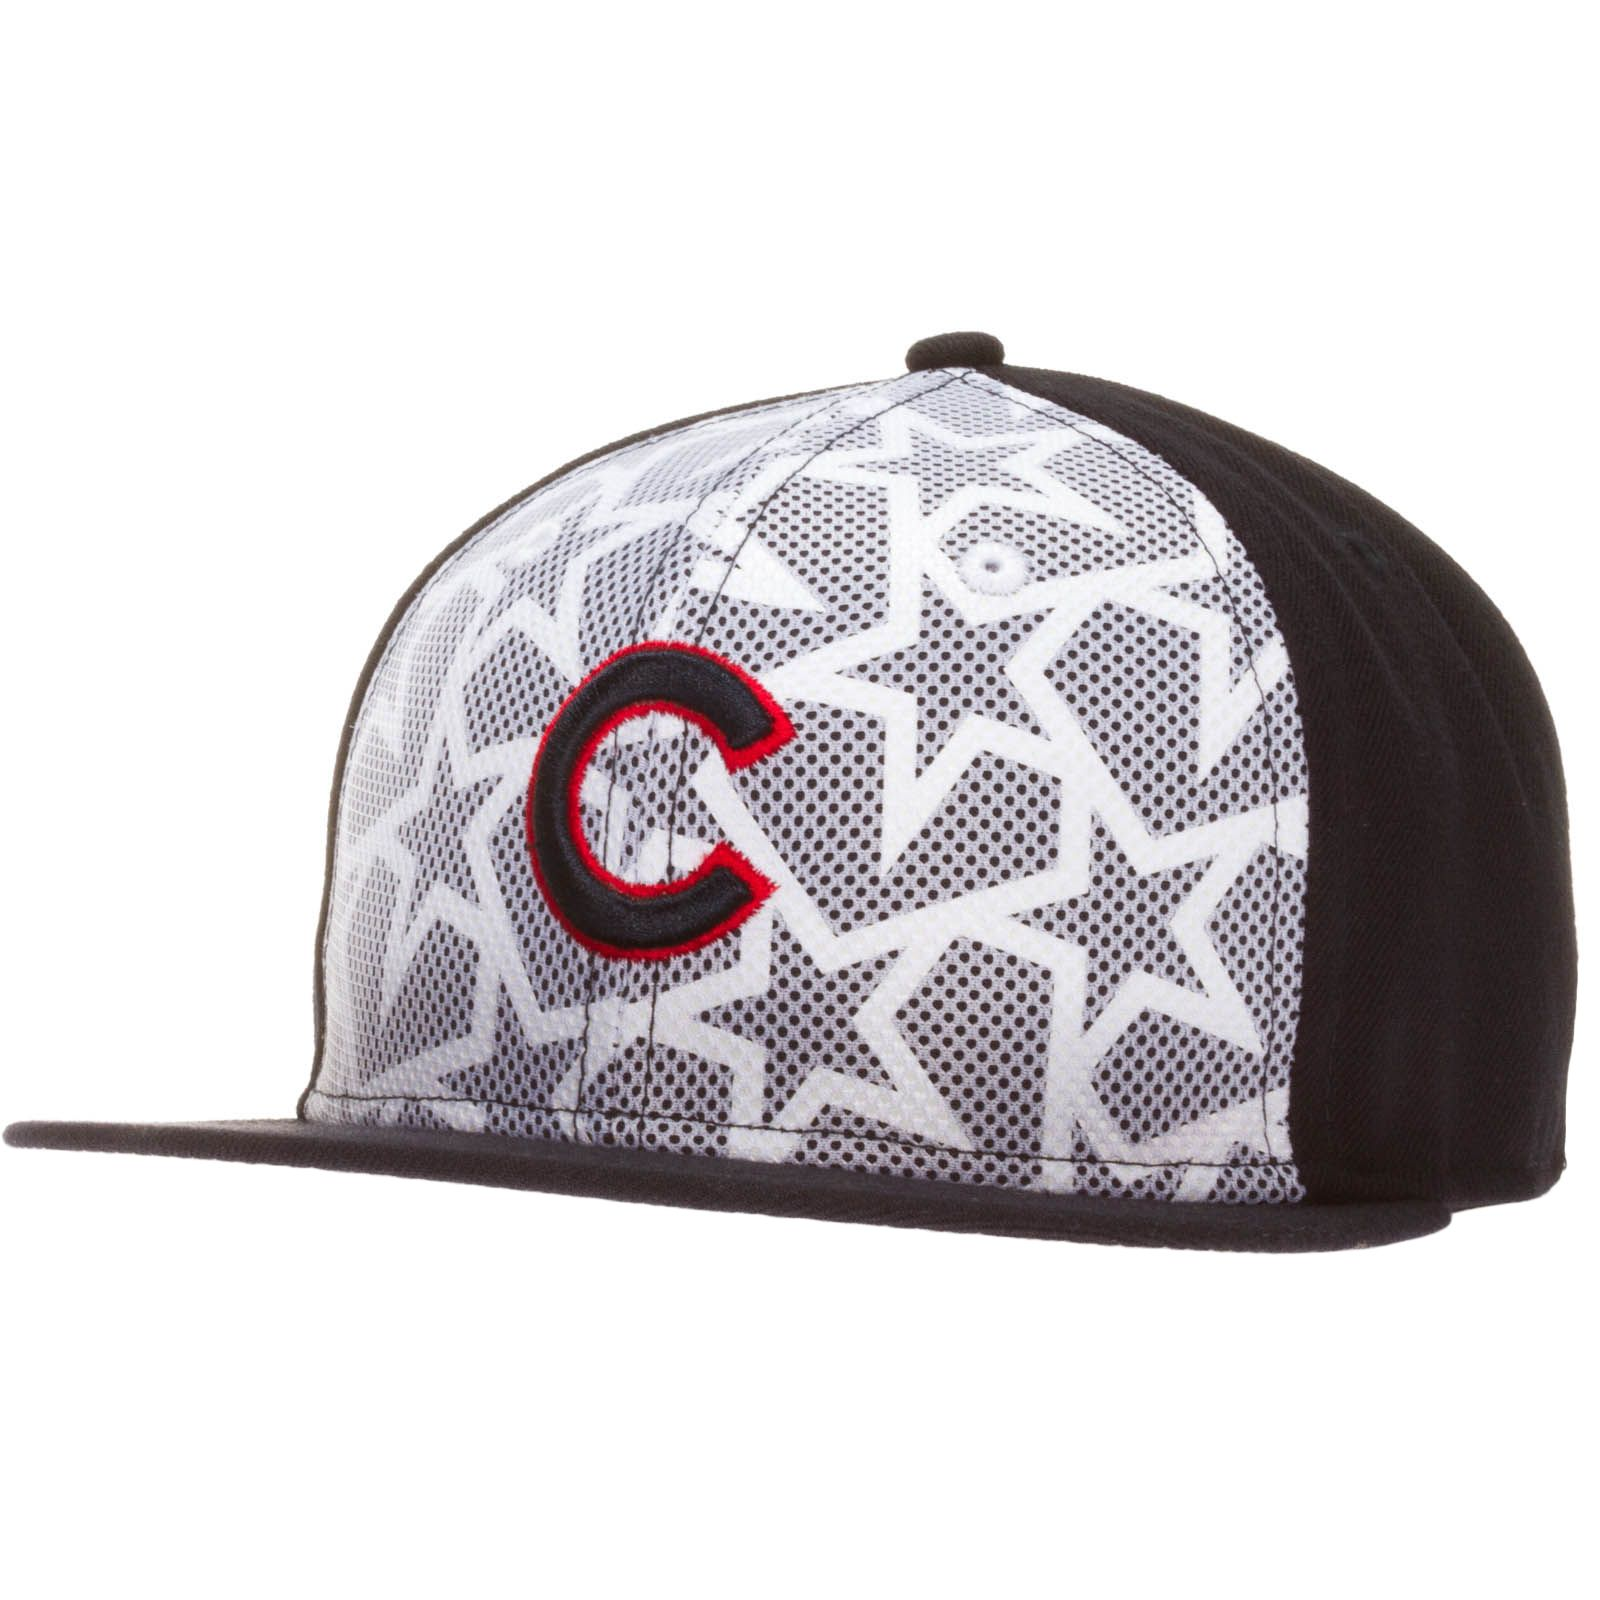 d8ddbe7e3e9 Chicago Cubs Navy and White 2016 On-Field Fourth of July Flat Bill Fitted  Hat by New Era  Chicago  Cubs  ChicagoCubs